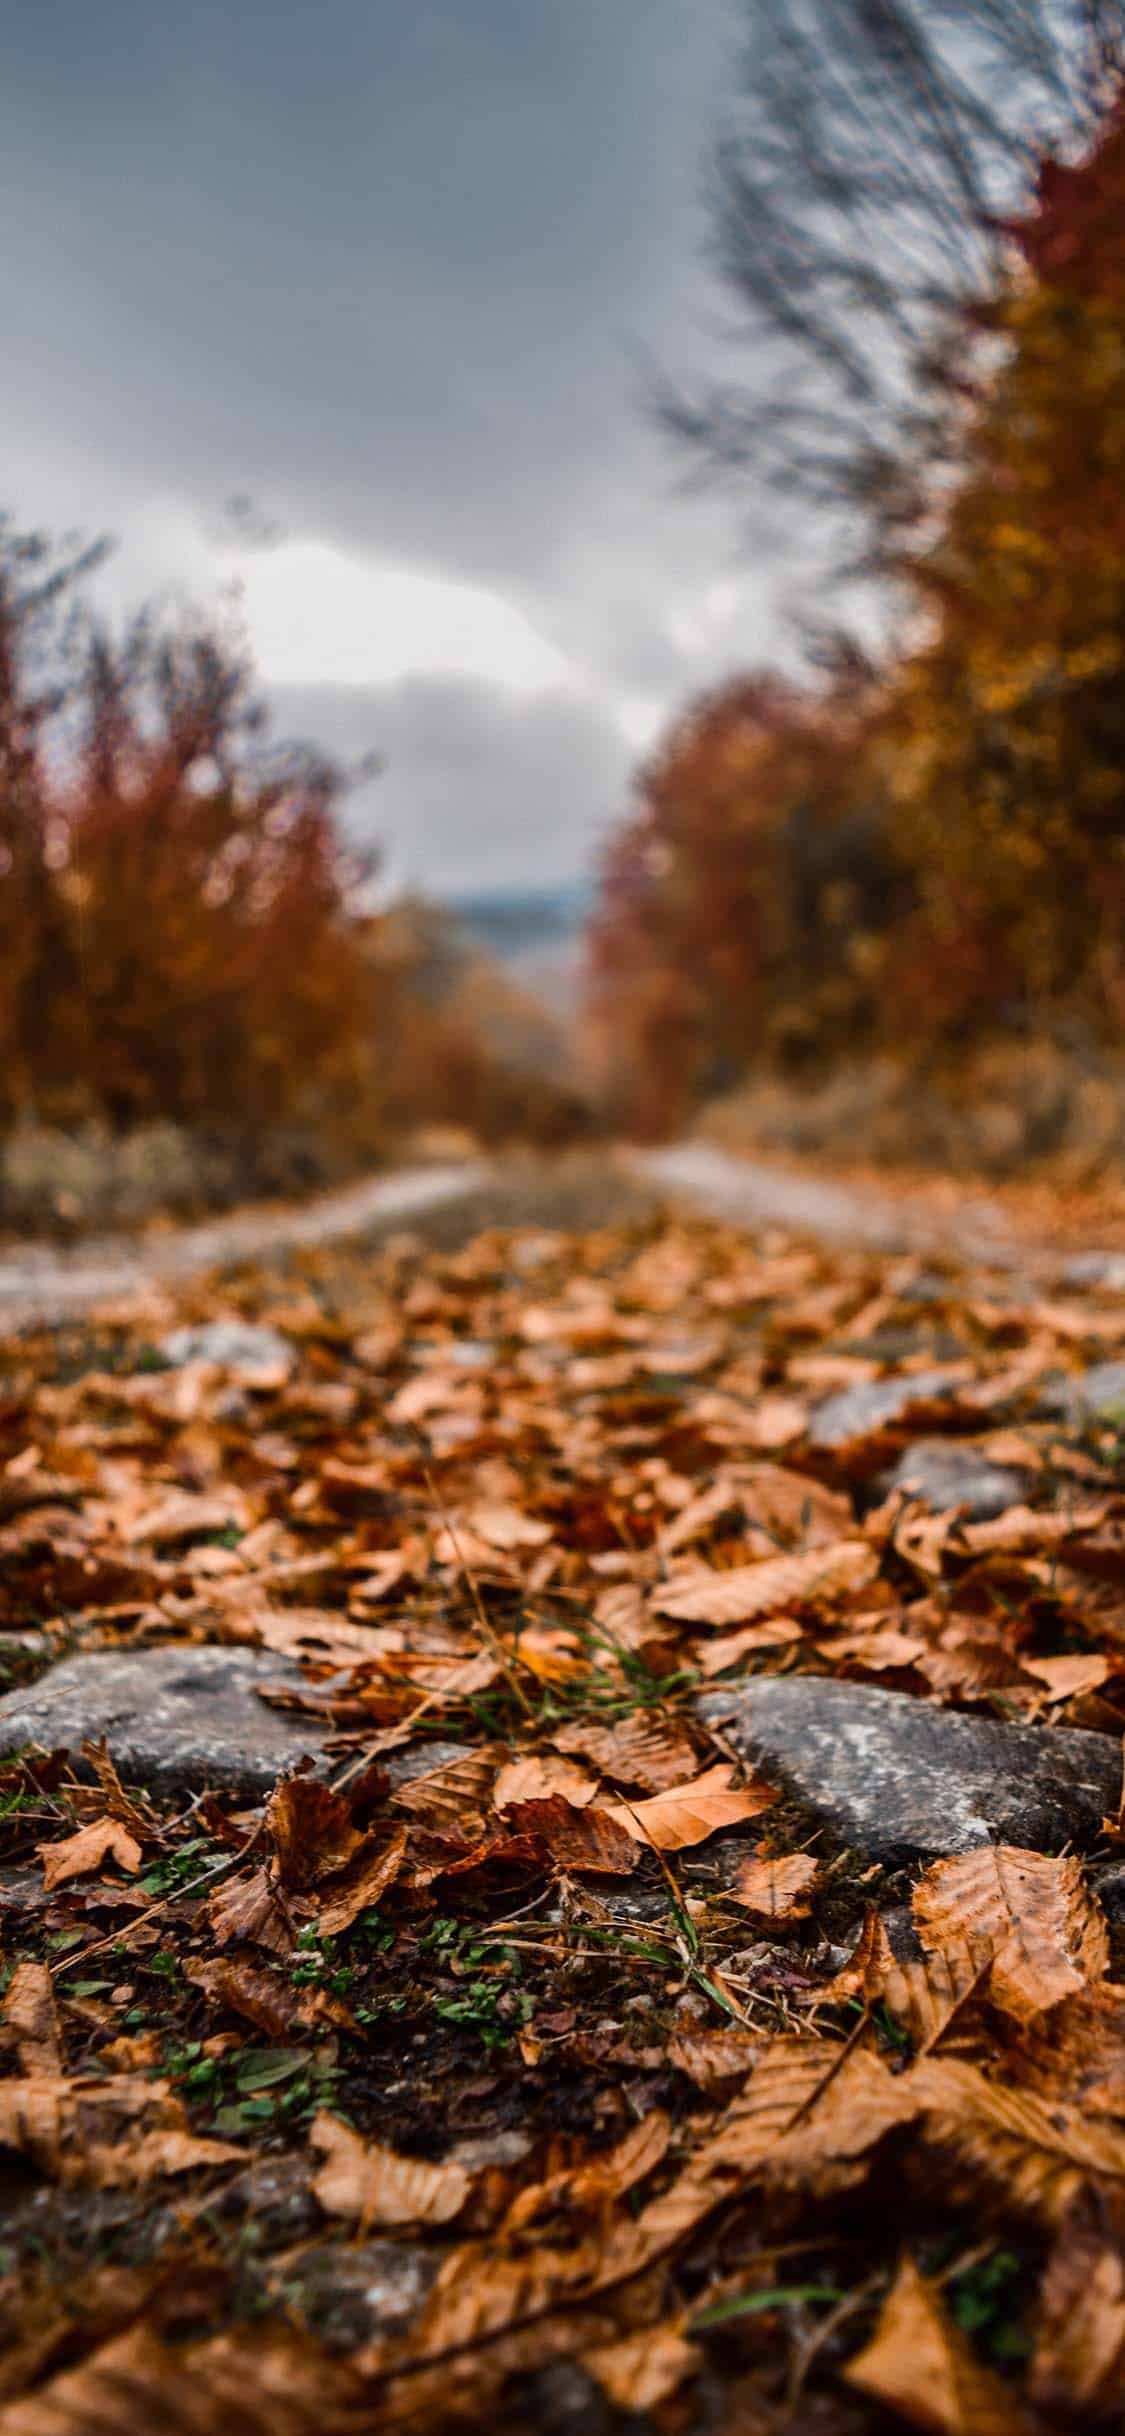 foto de Fall Wallpapers for iPhone - FREE Download Best Autumn Wallpapers